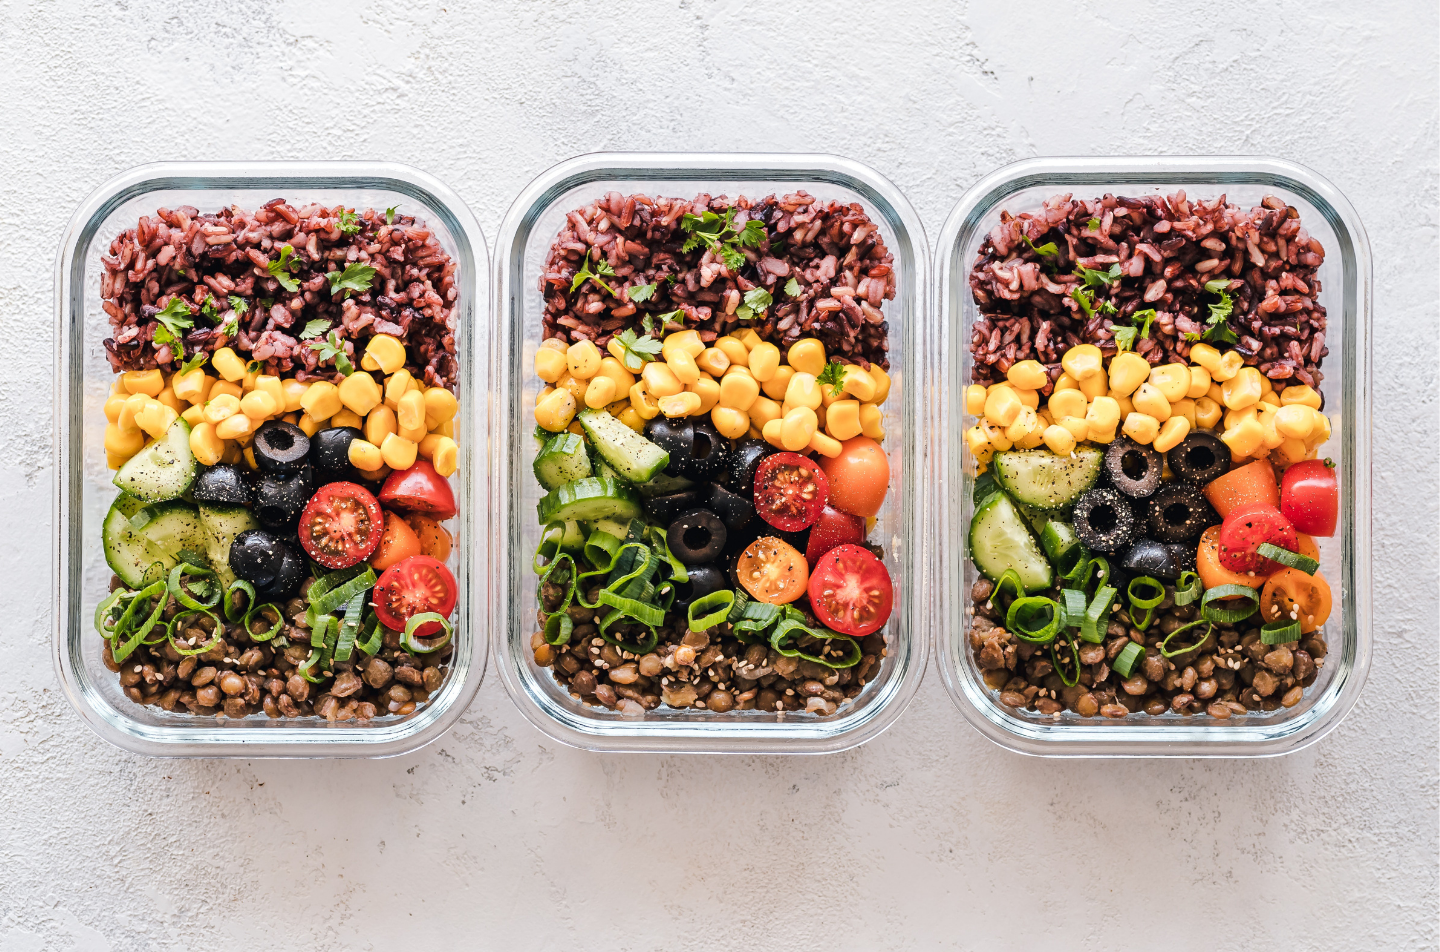 5 Benefits Of Meal Prepping Every Week